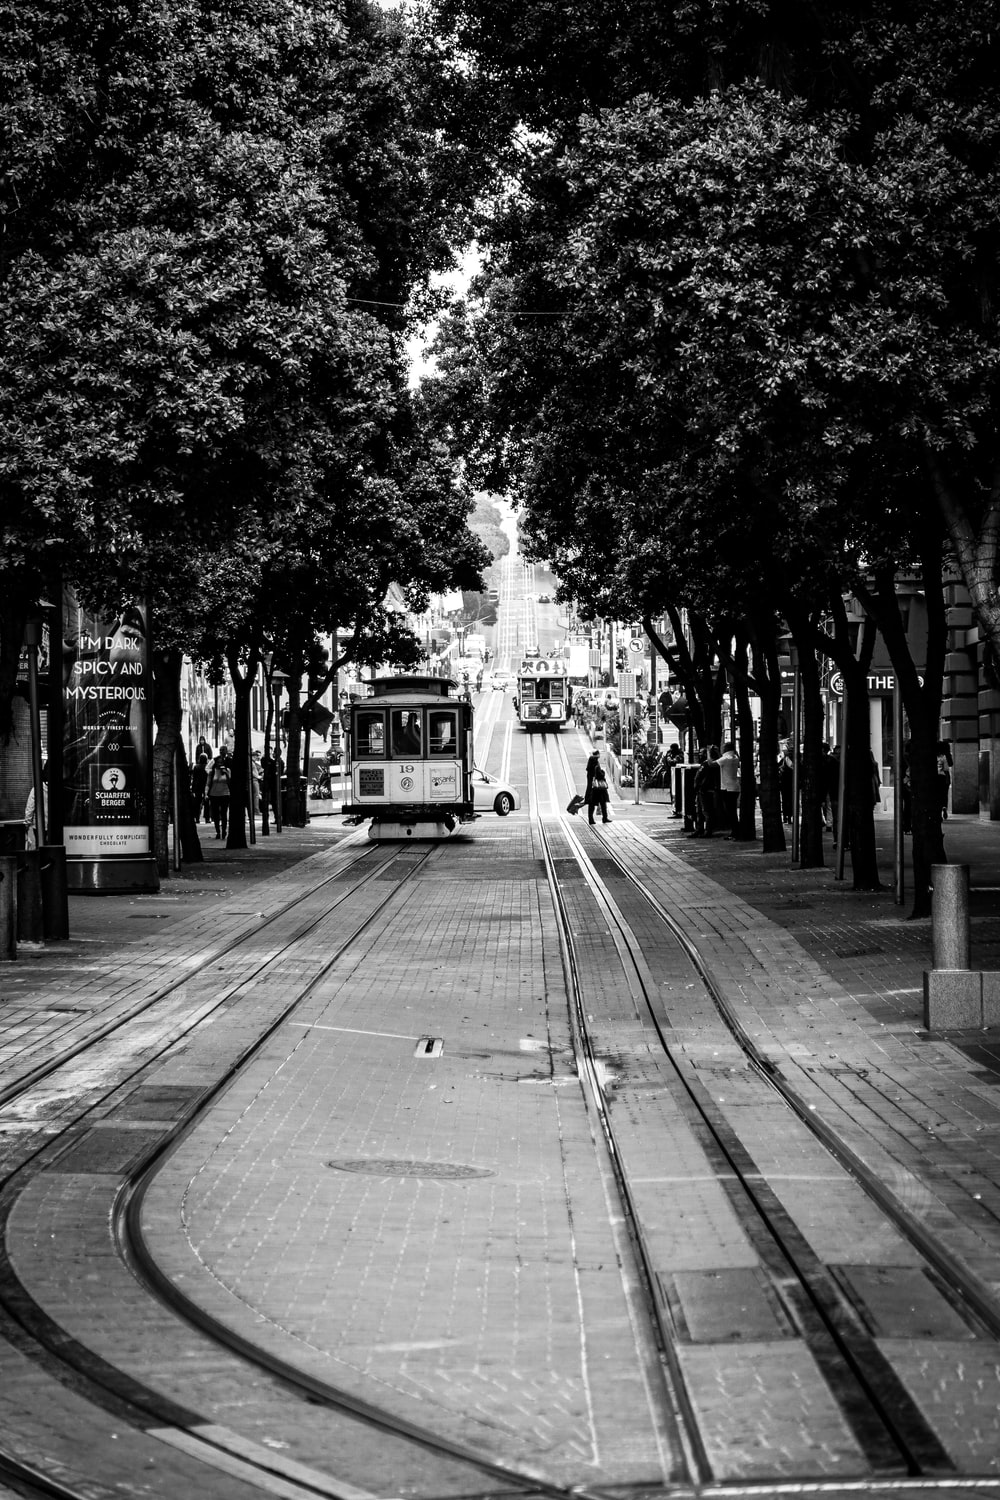 grayscale photo of people and tram in street